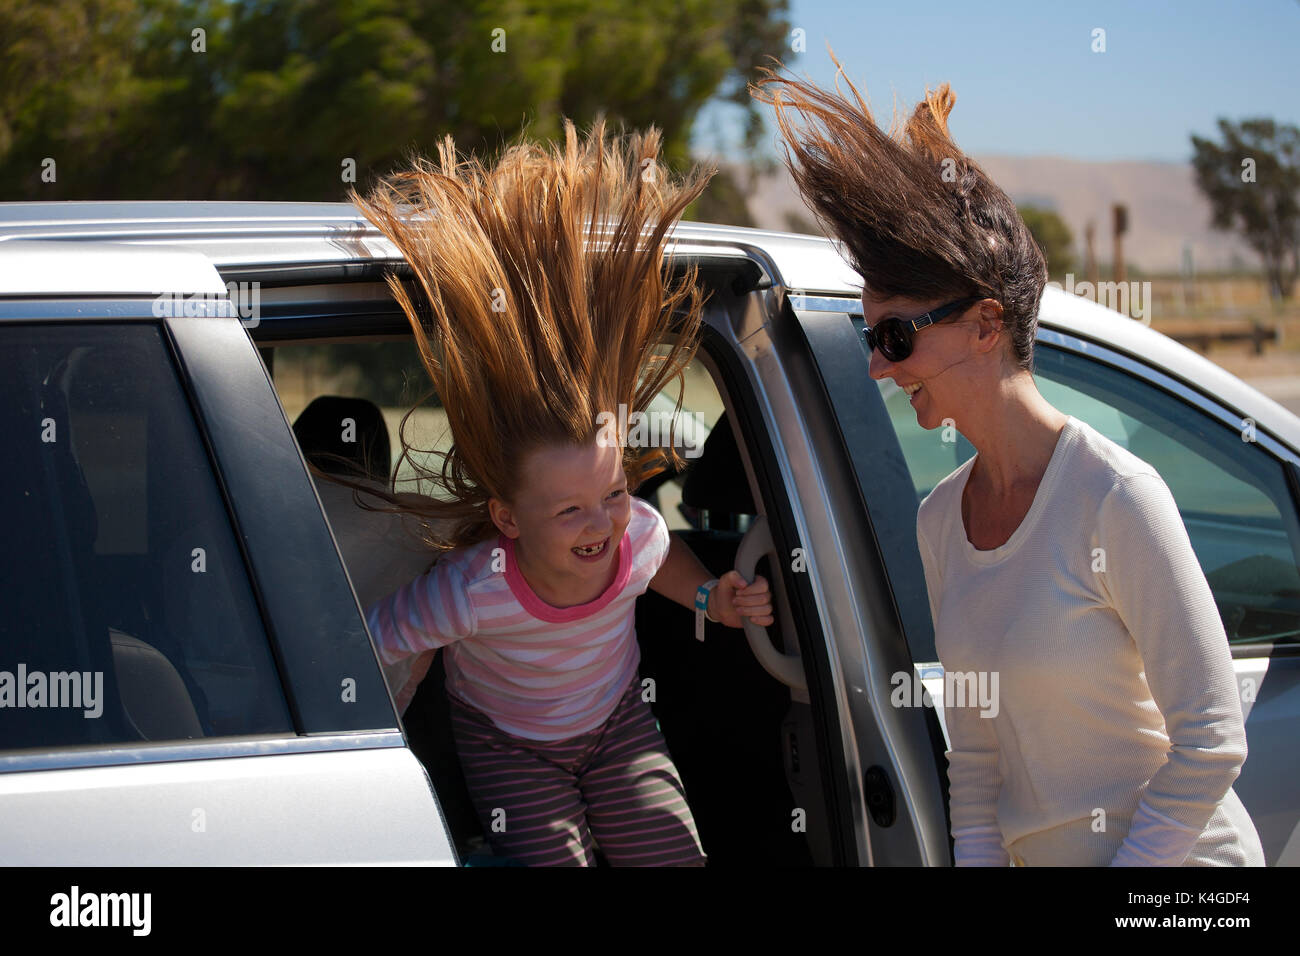 A mother and daughter experience high winds next to their vehicle in central California - Stock Image